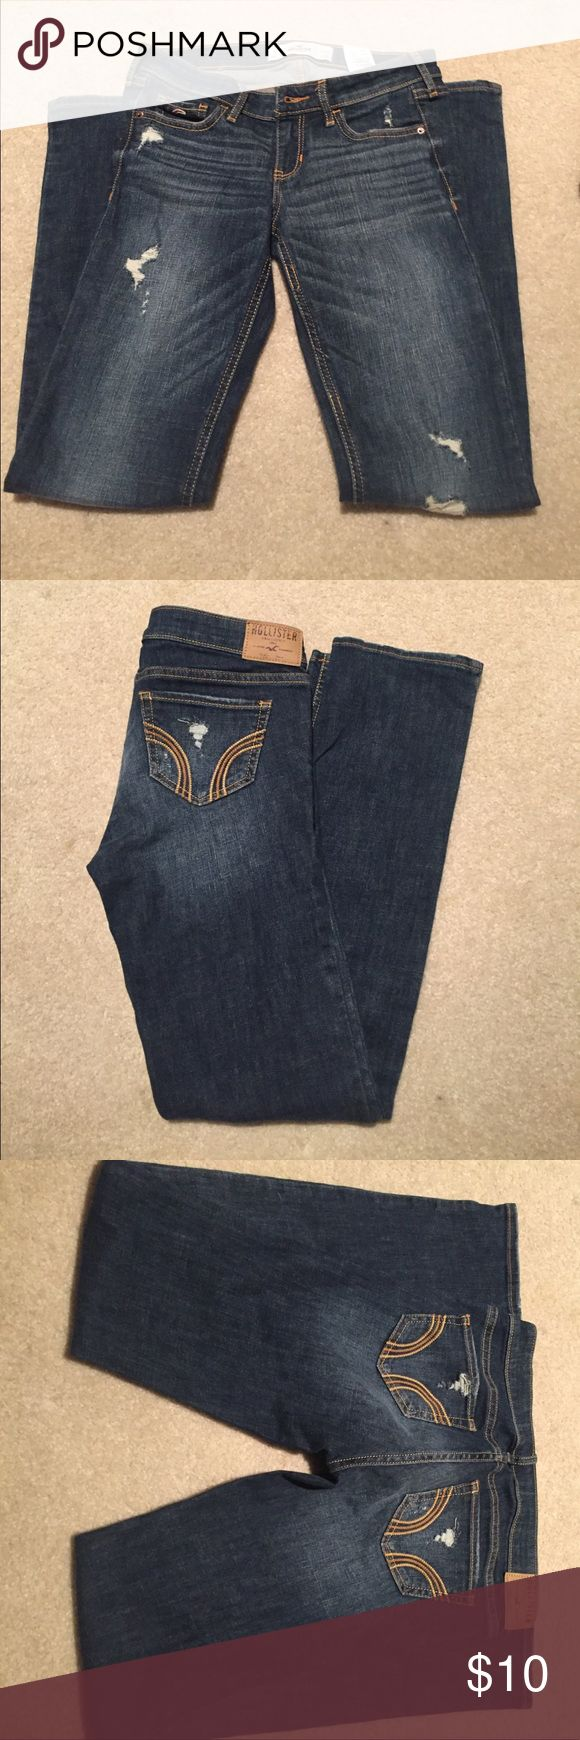 Hollister boot cut jeans Hollister boot cut jeans destroyed size 1 short in great condition Hollister Pants Boot Cut & Flare